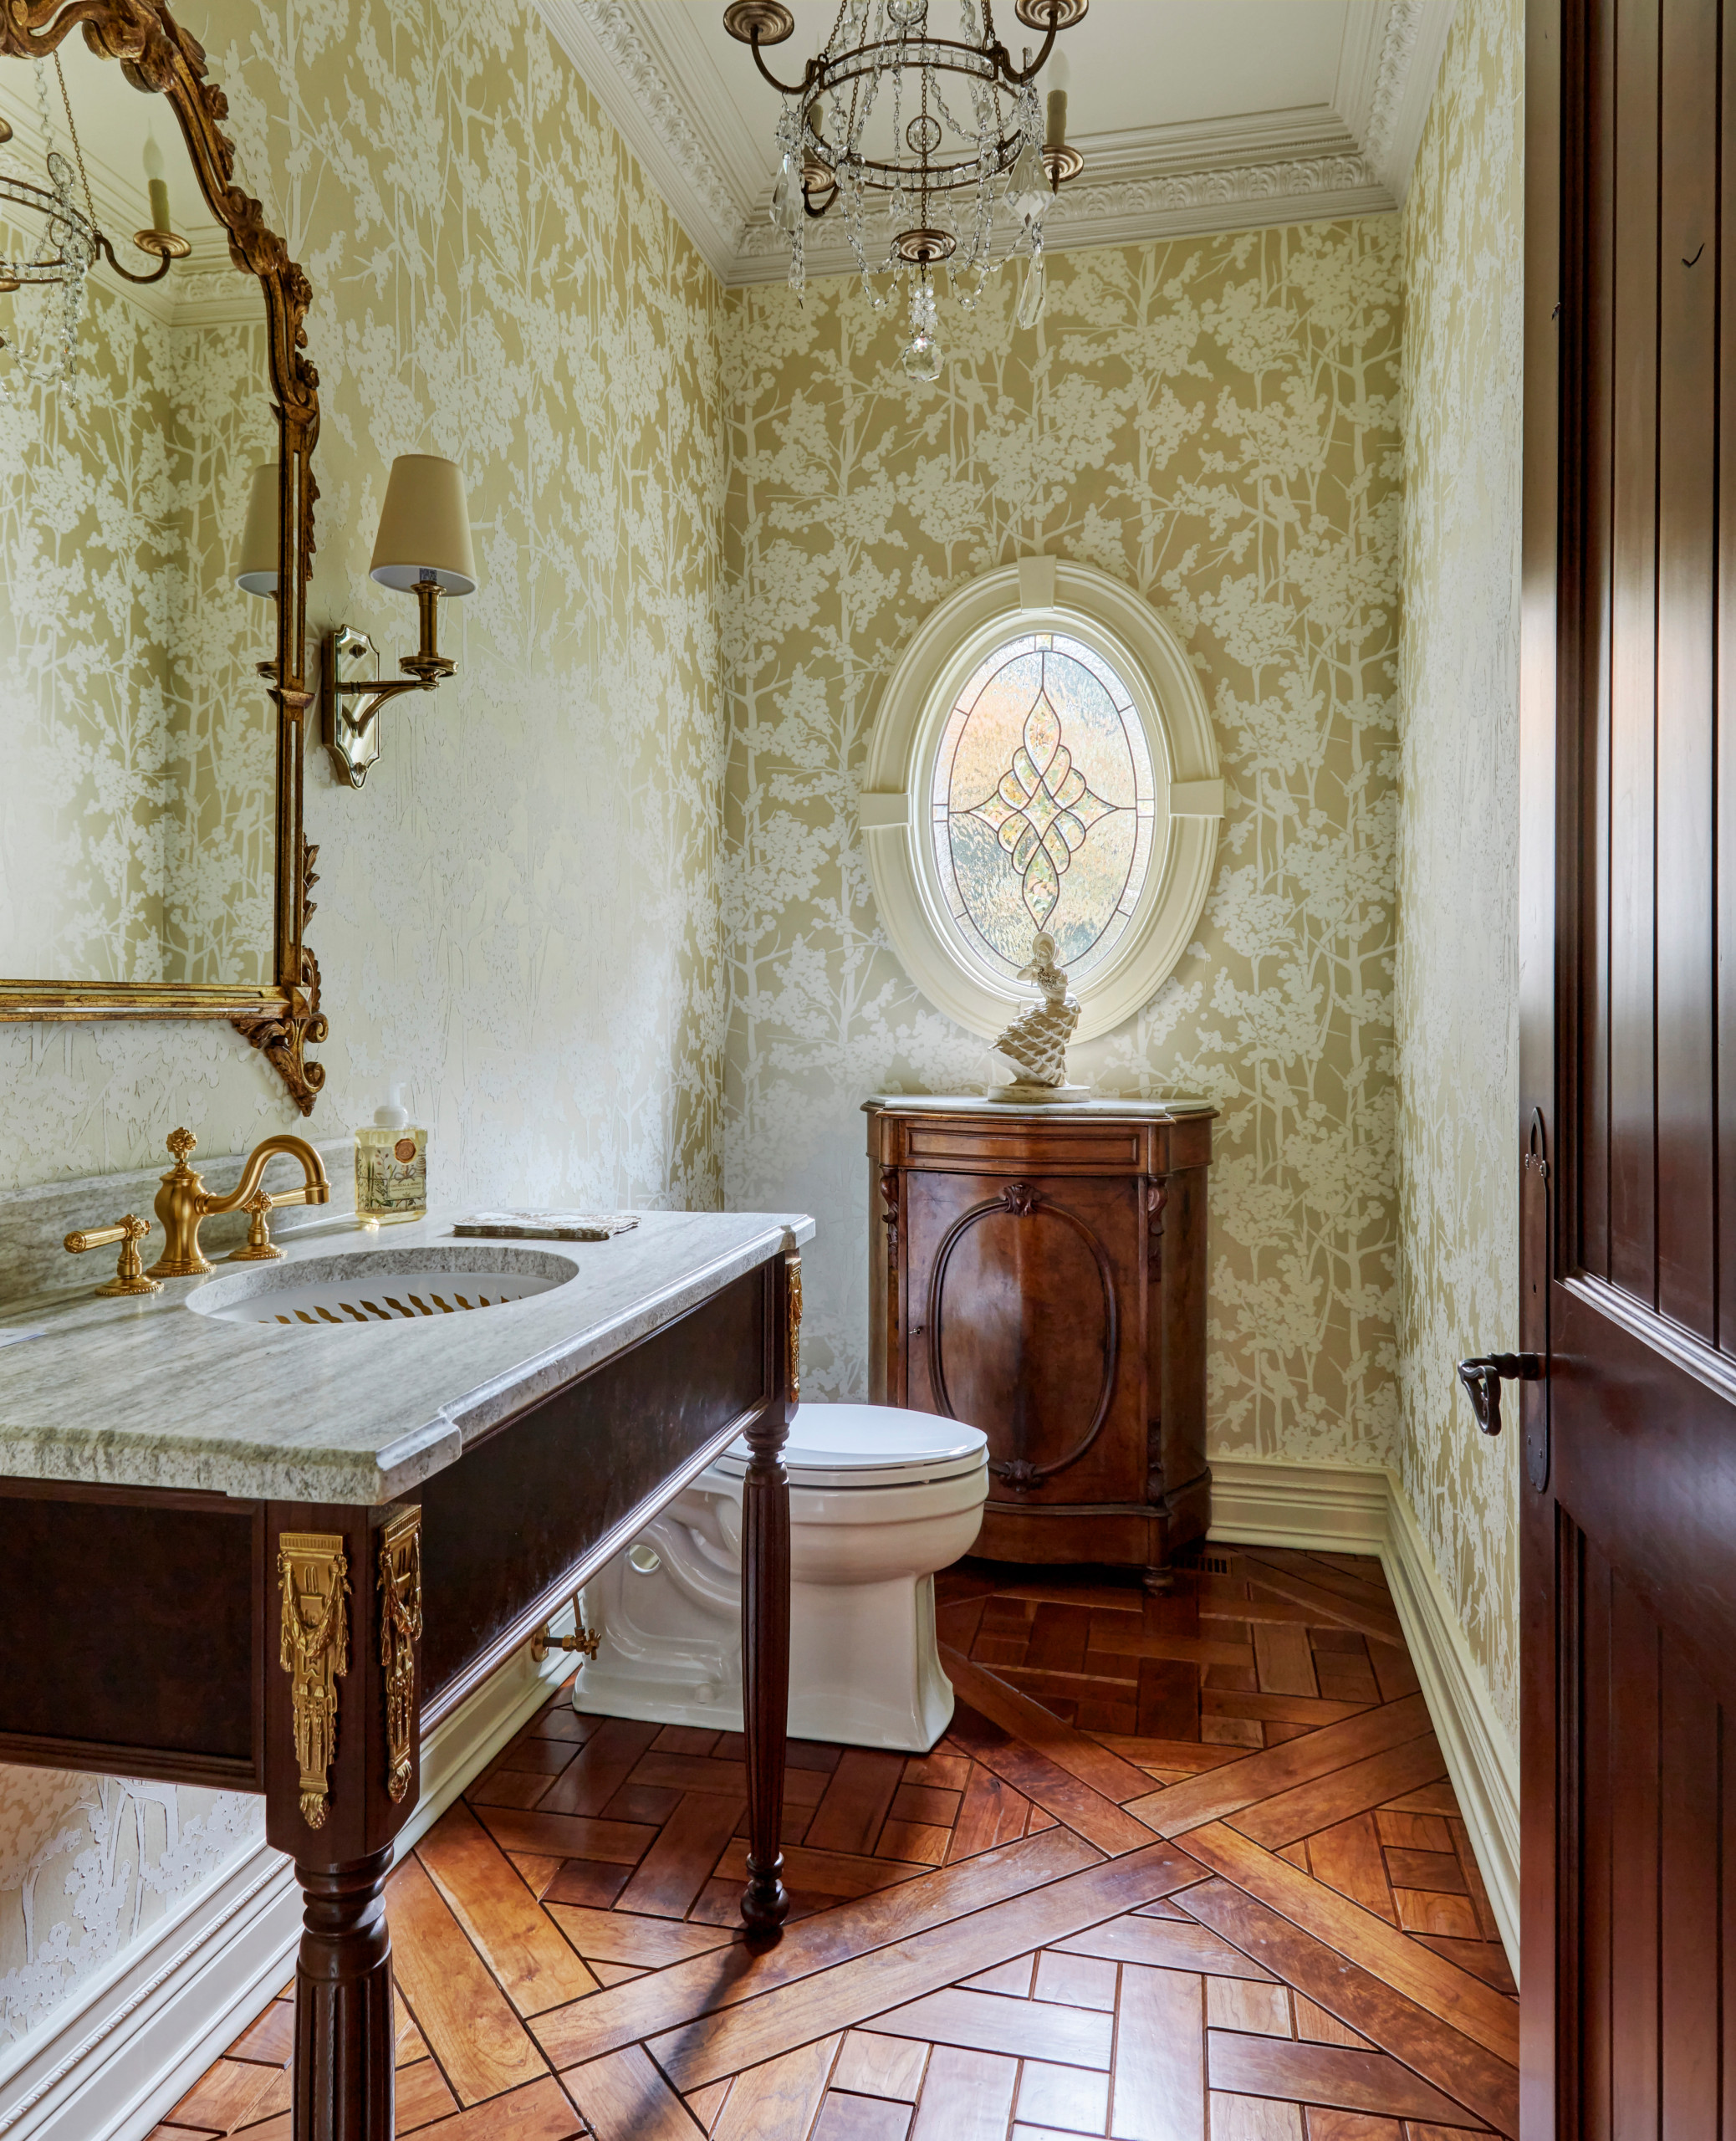 75 Beautiful Traditional Powder Room Pictures Ideas June 2021 Houzz